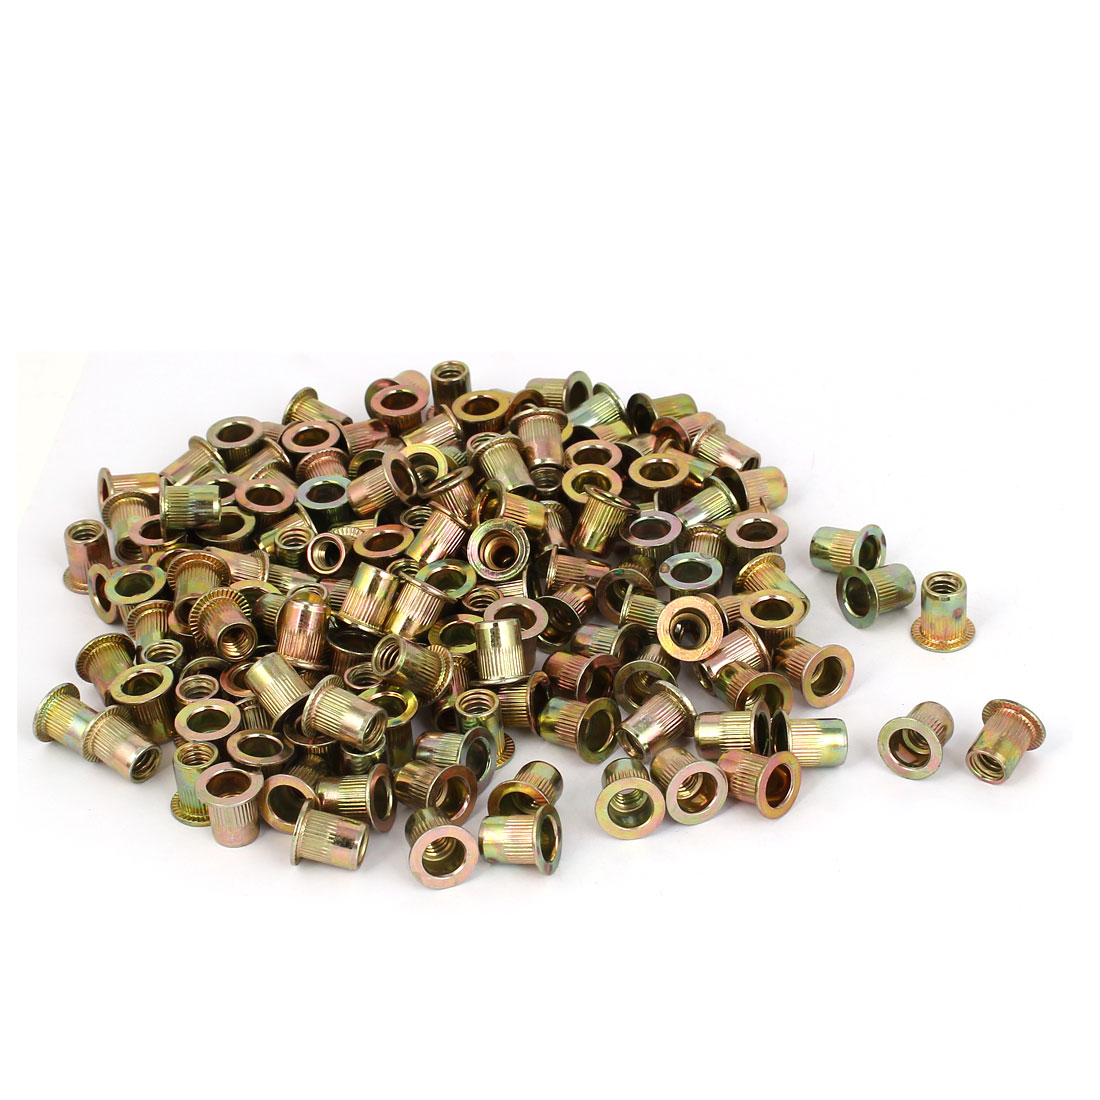 Straight Knurled Reduced Head Rivet Nut Insert Nutsert Bronze Tone 9x12mm 200pcs